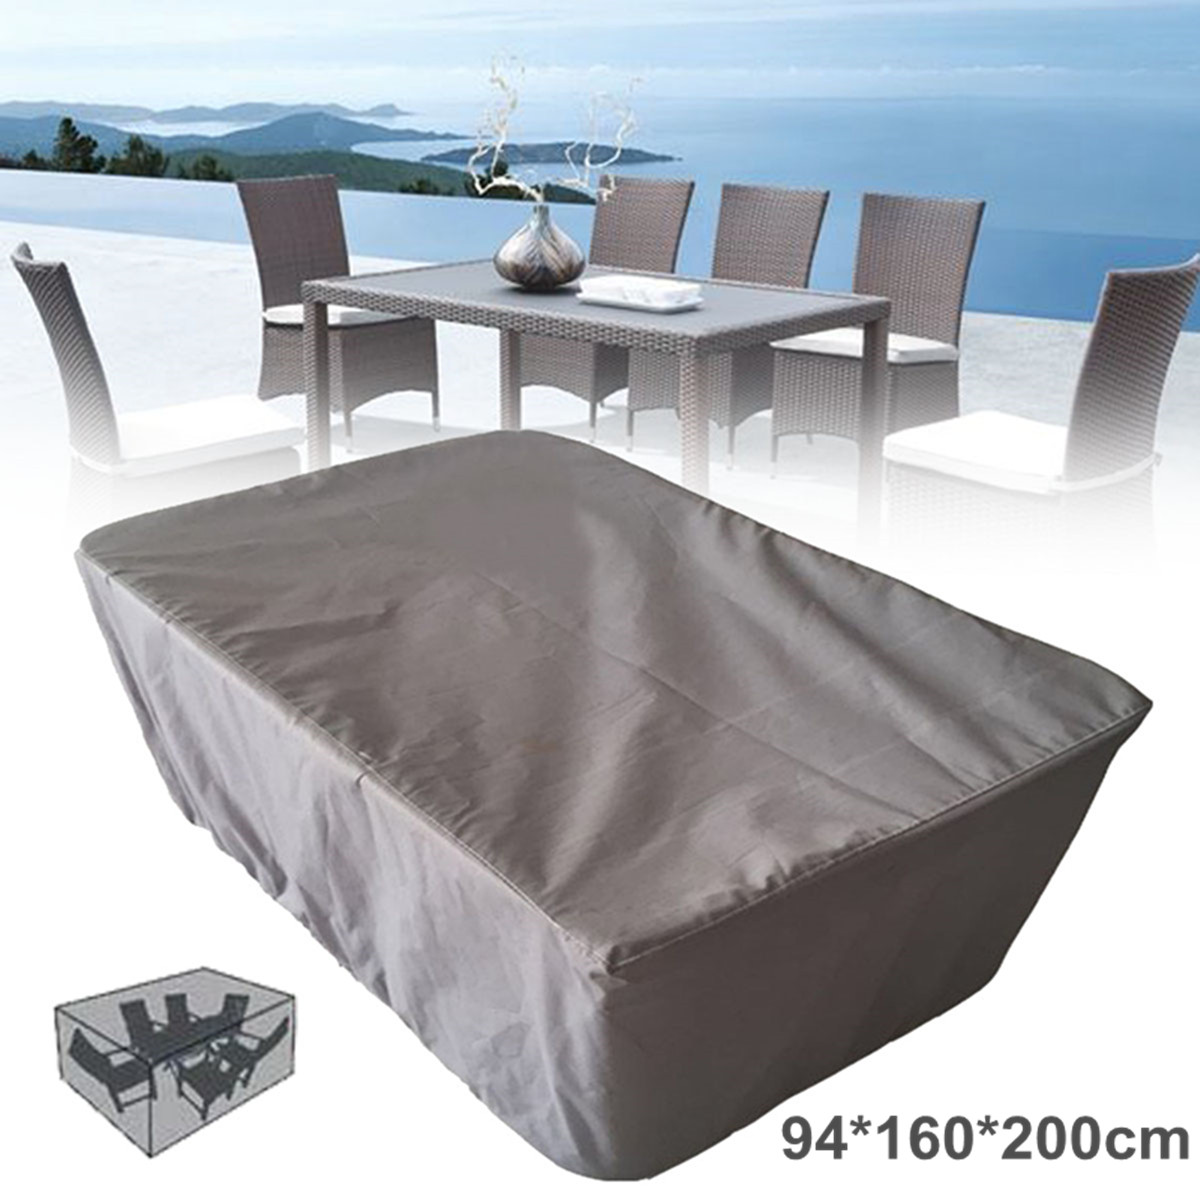 Details About Grey Garden Patio Table Cover Waterproof Outdoor Furniture Shelter Protection